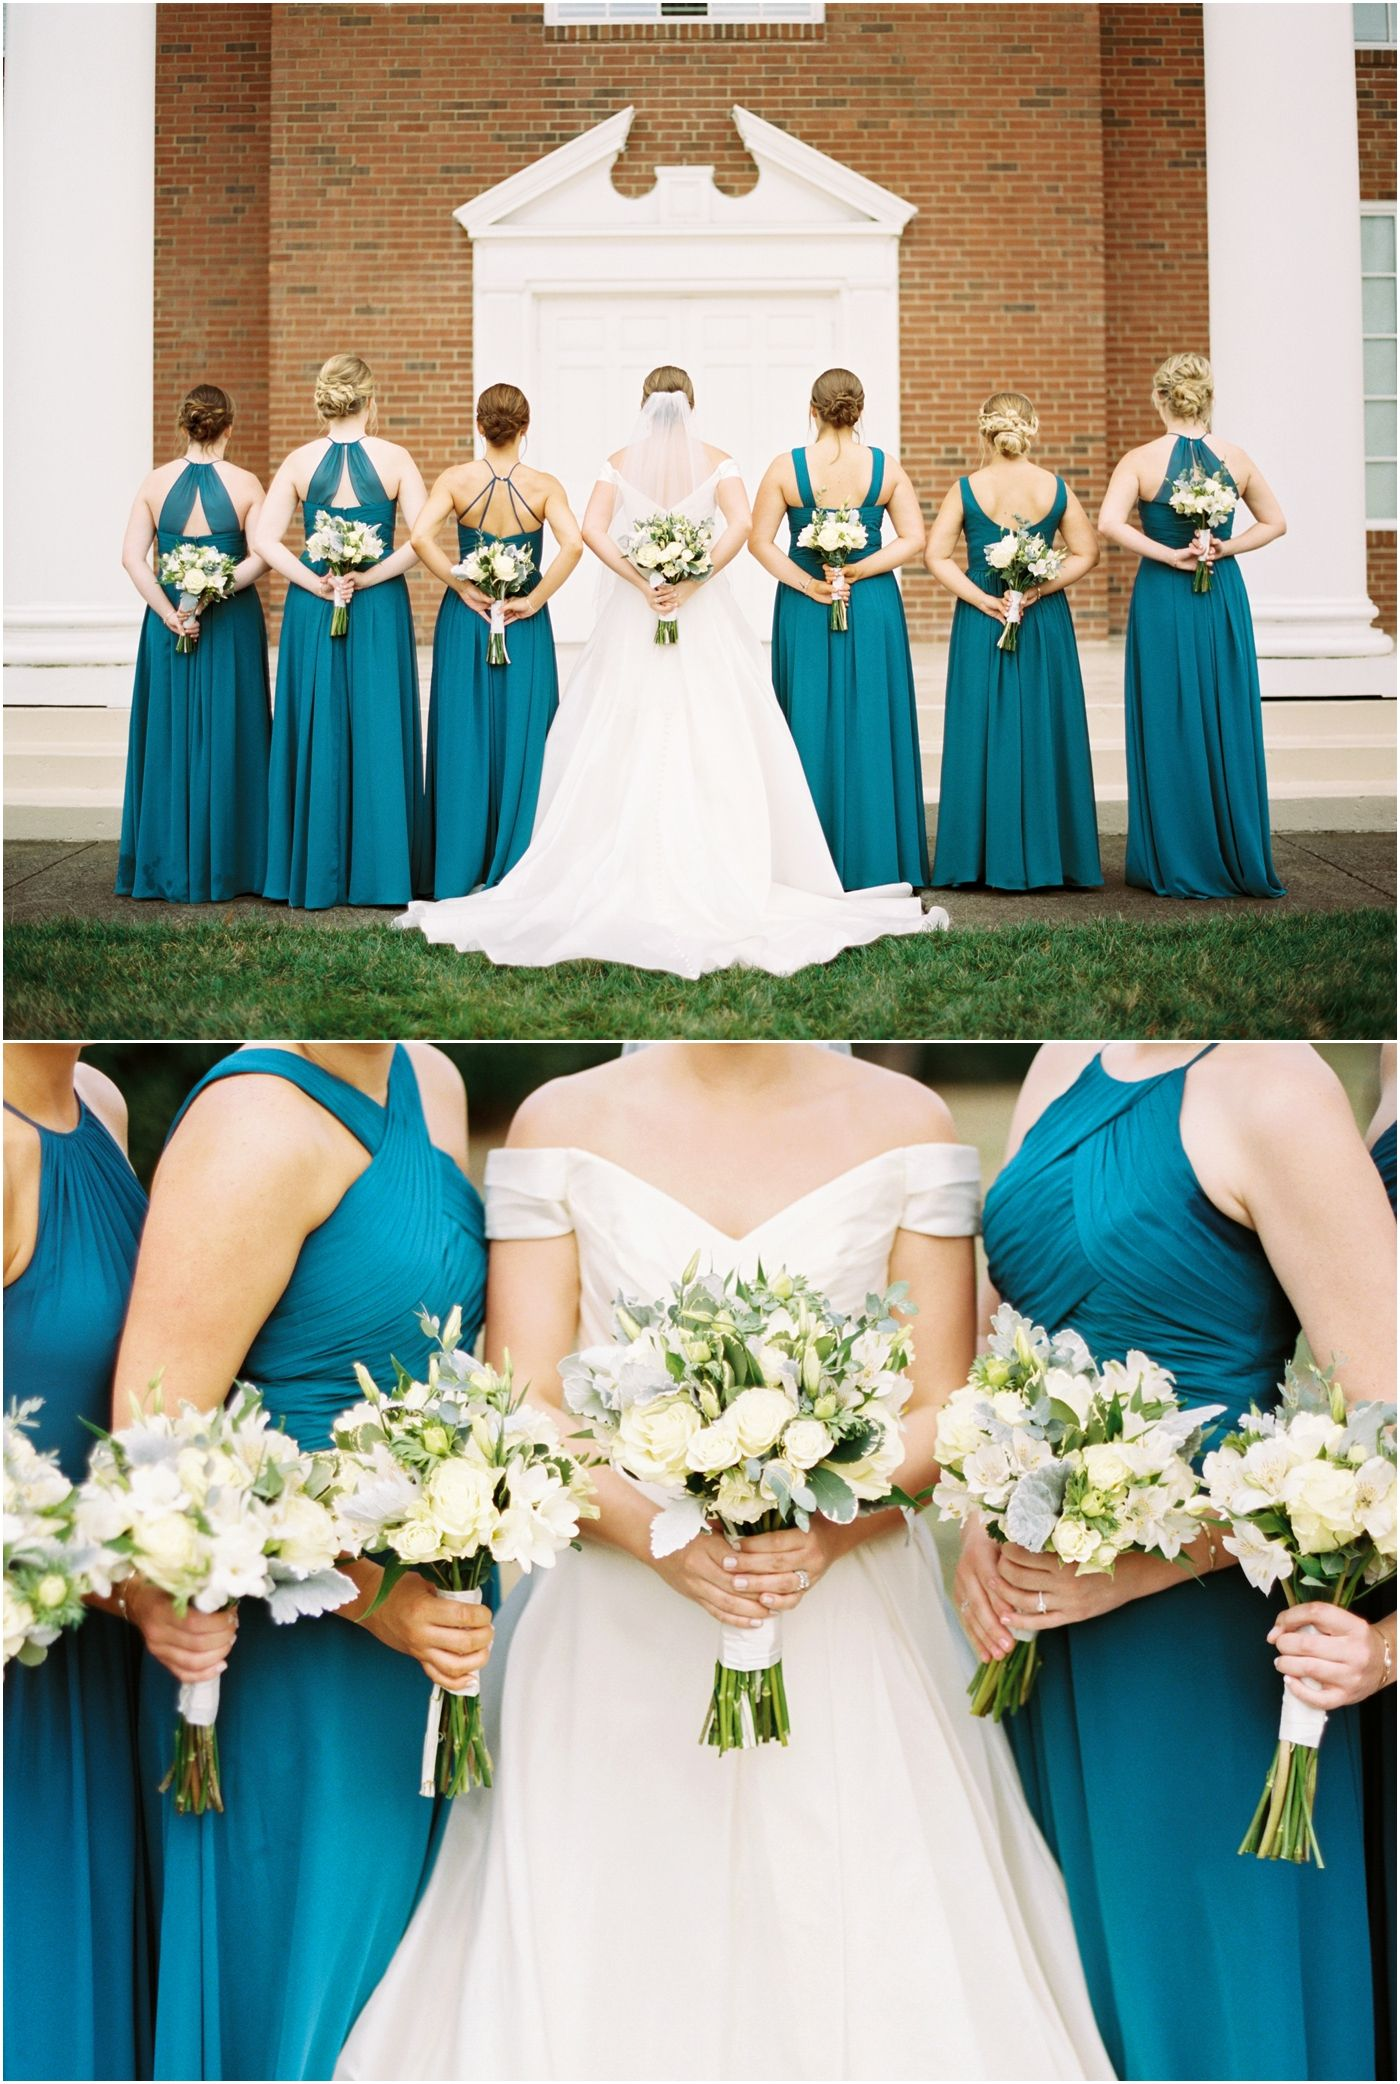 Teal Bridesmaids Dresses With Ivory And Green Wedding Bouquets